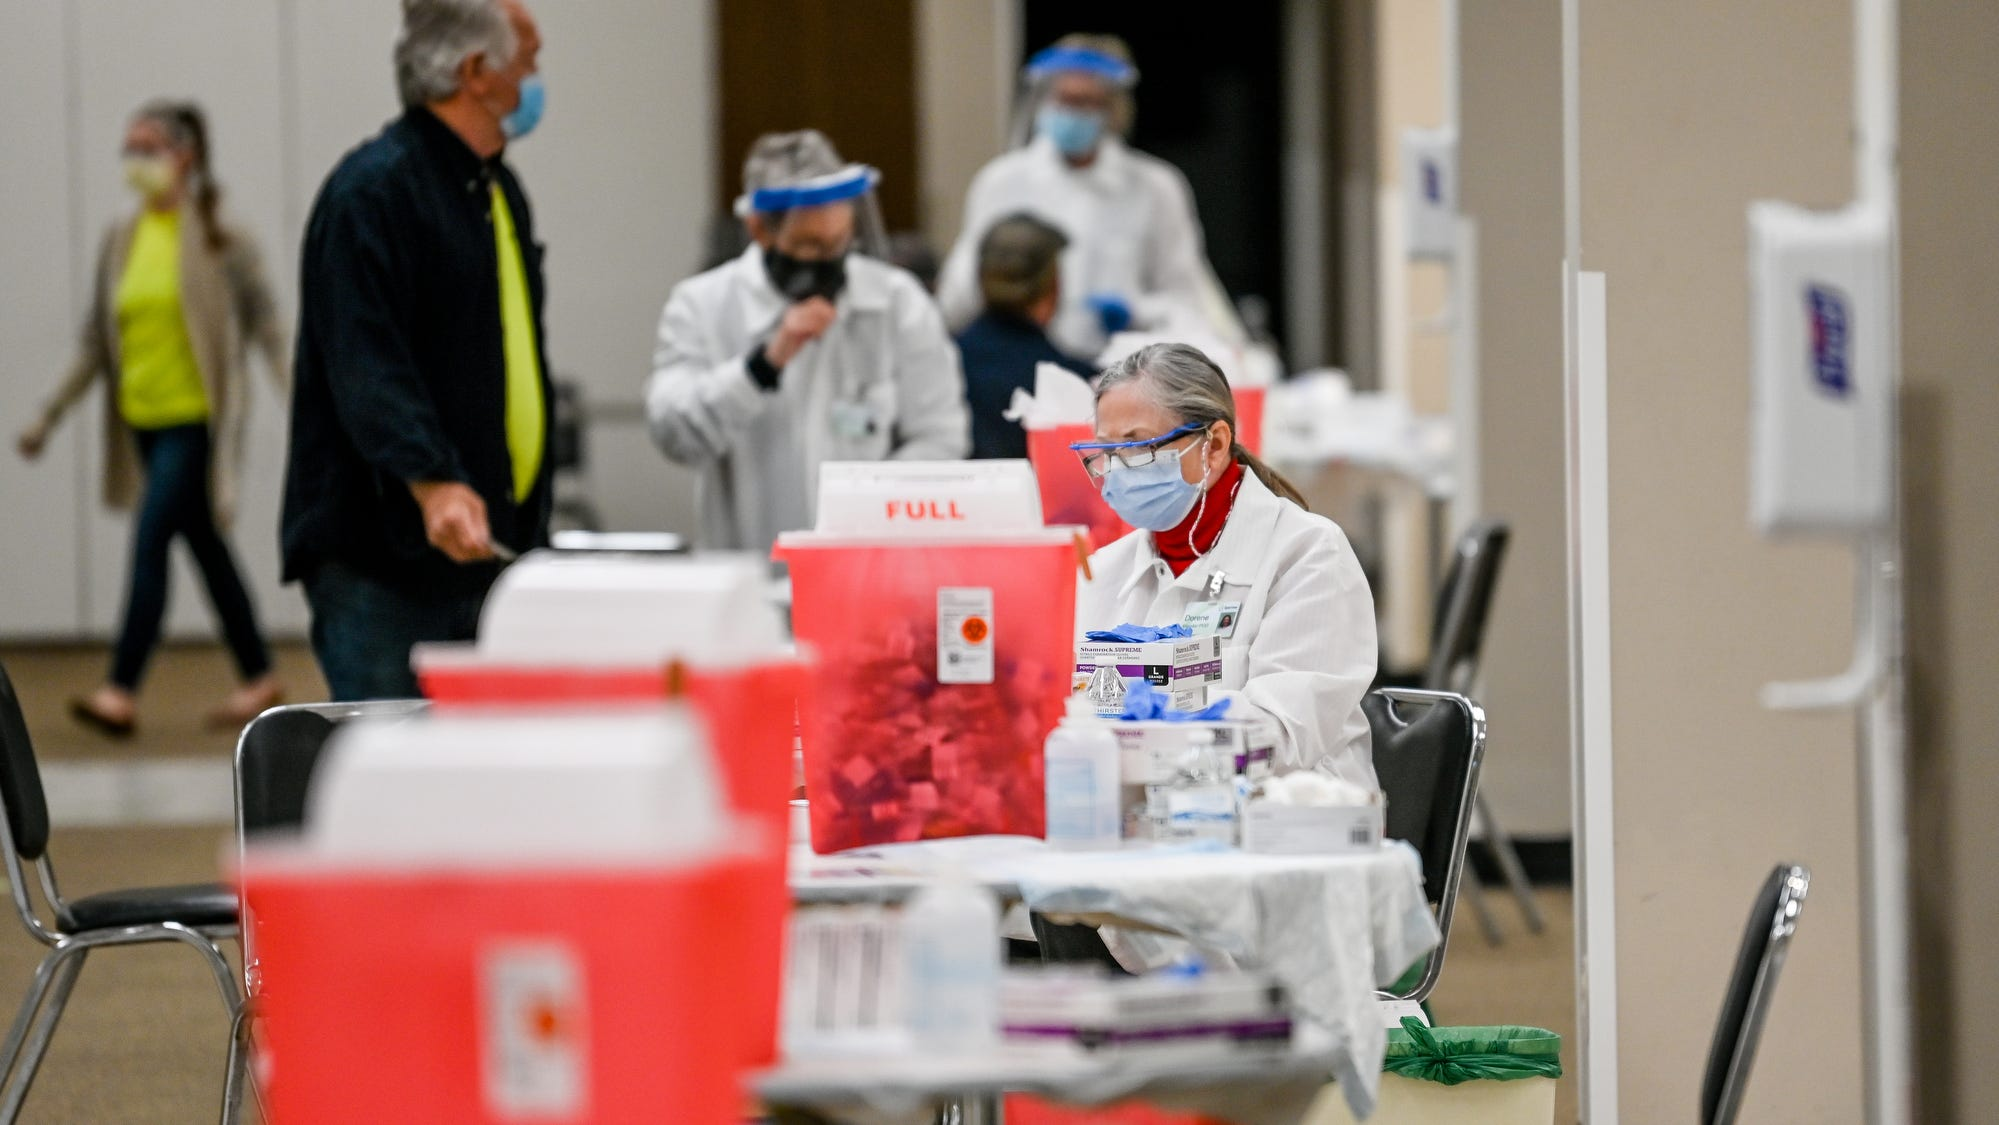 Why people who contracted COVID-19 don't count toward herd immunity - Lansing State Journal